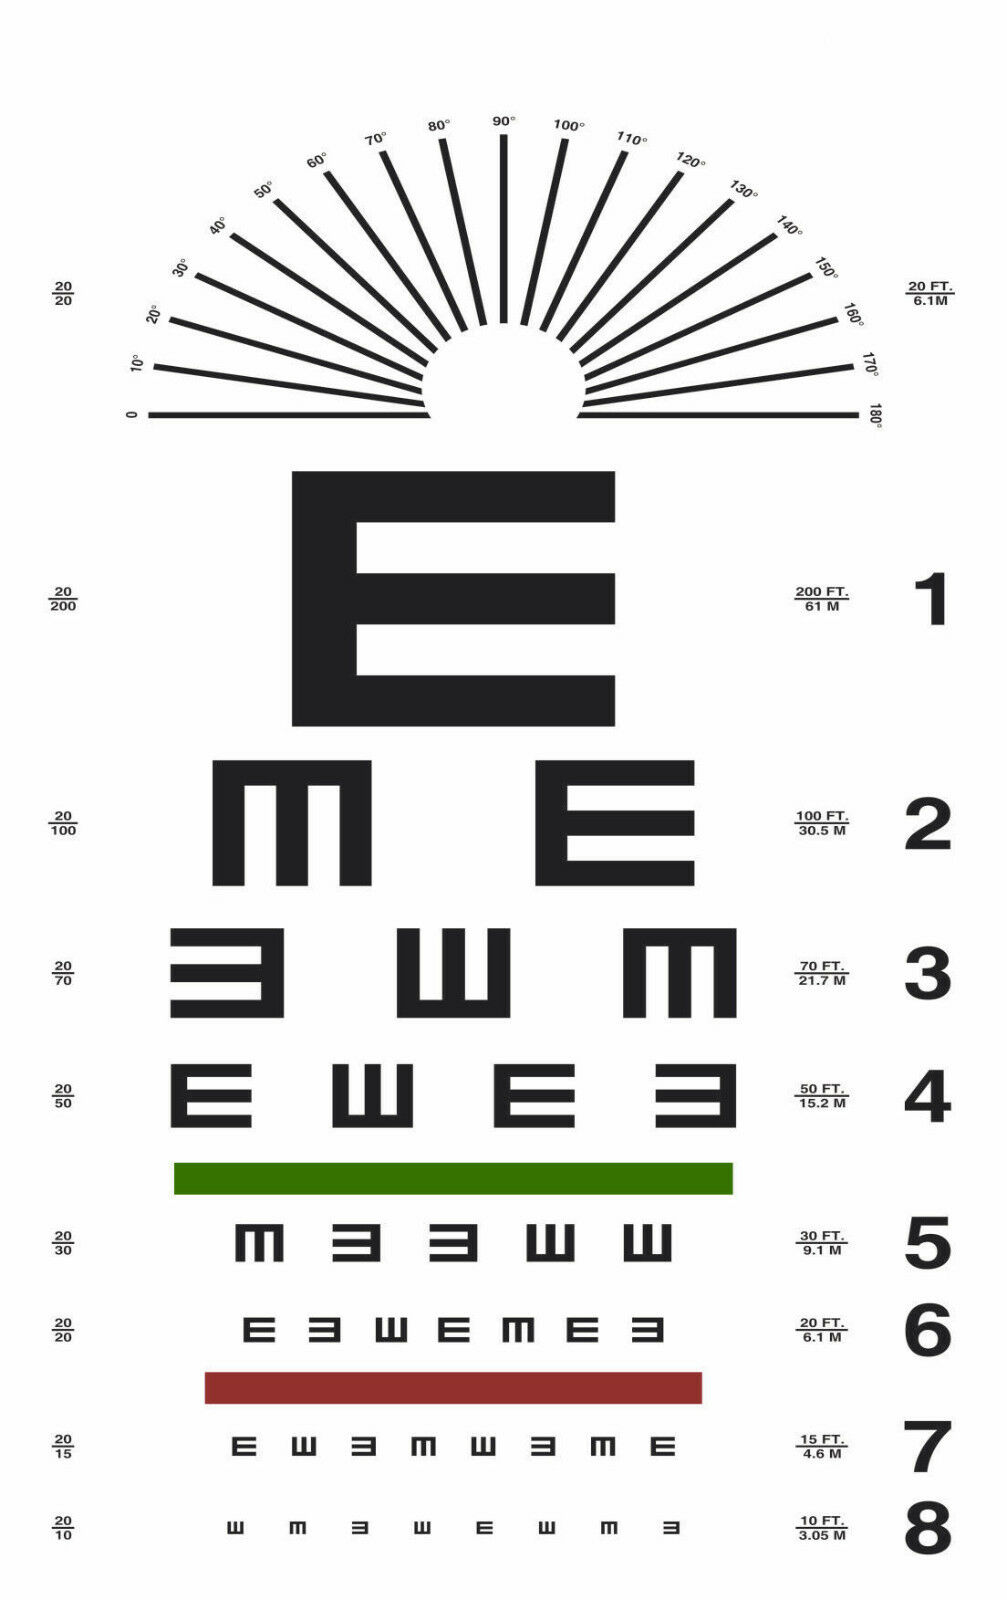 Snellen eye chart printable free gallery free any chart examples snellen eye chart printable pdf images free any chart examples eye exam chart pdf image collections geenschuldenfo Choice Image